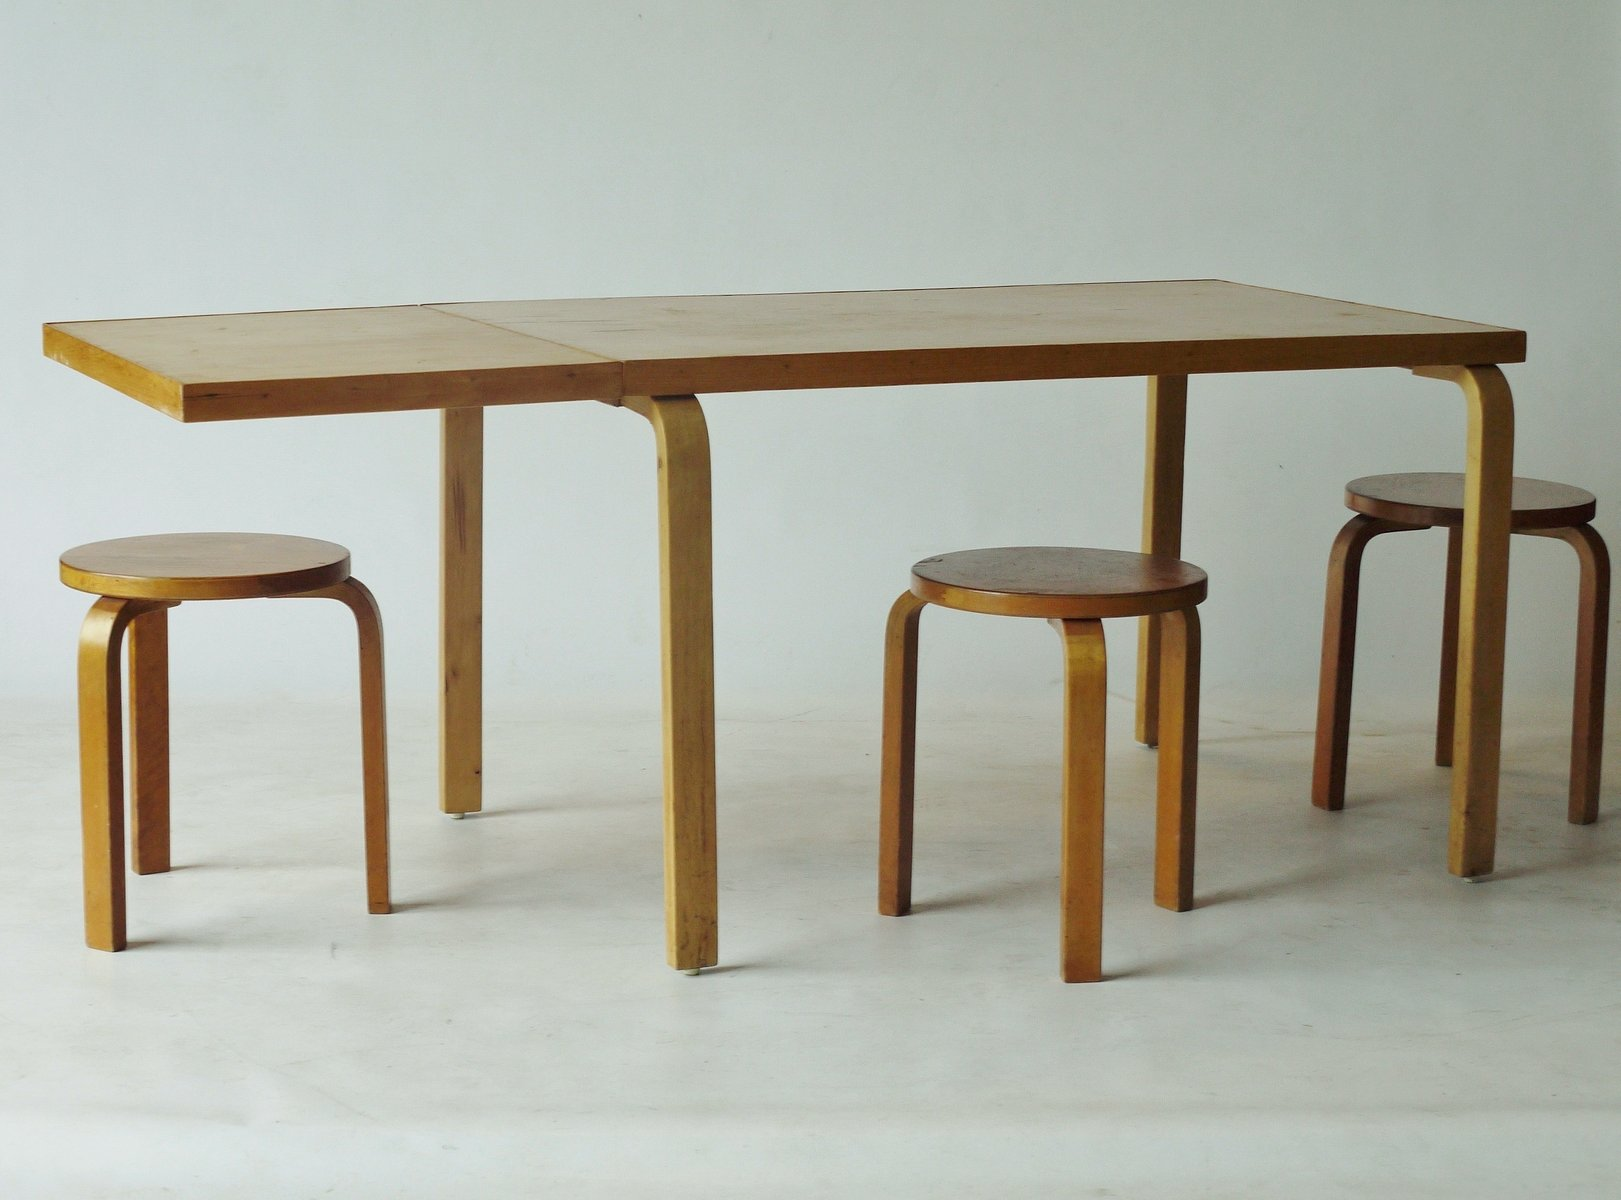 Drop Leaf Extendable Dining Table By Alvar Aalto For Artek